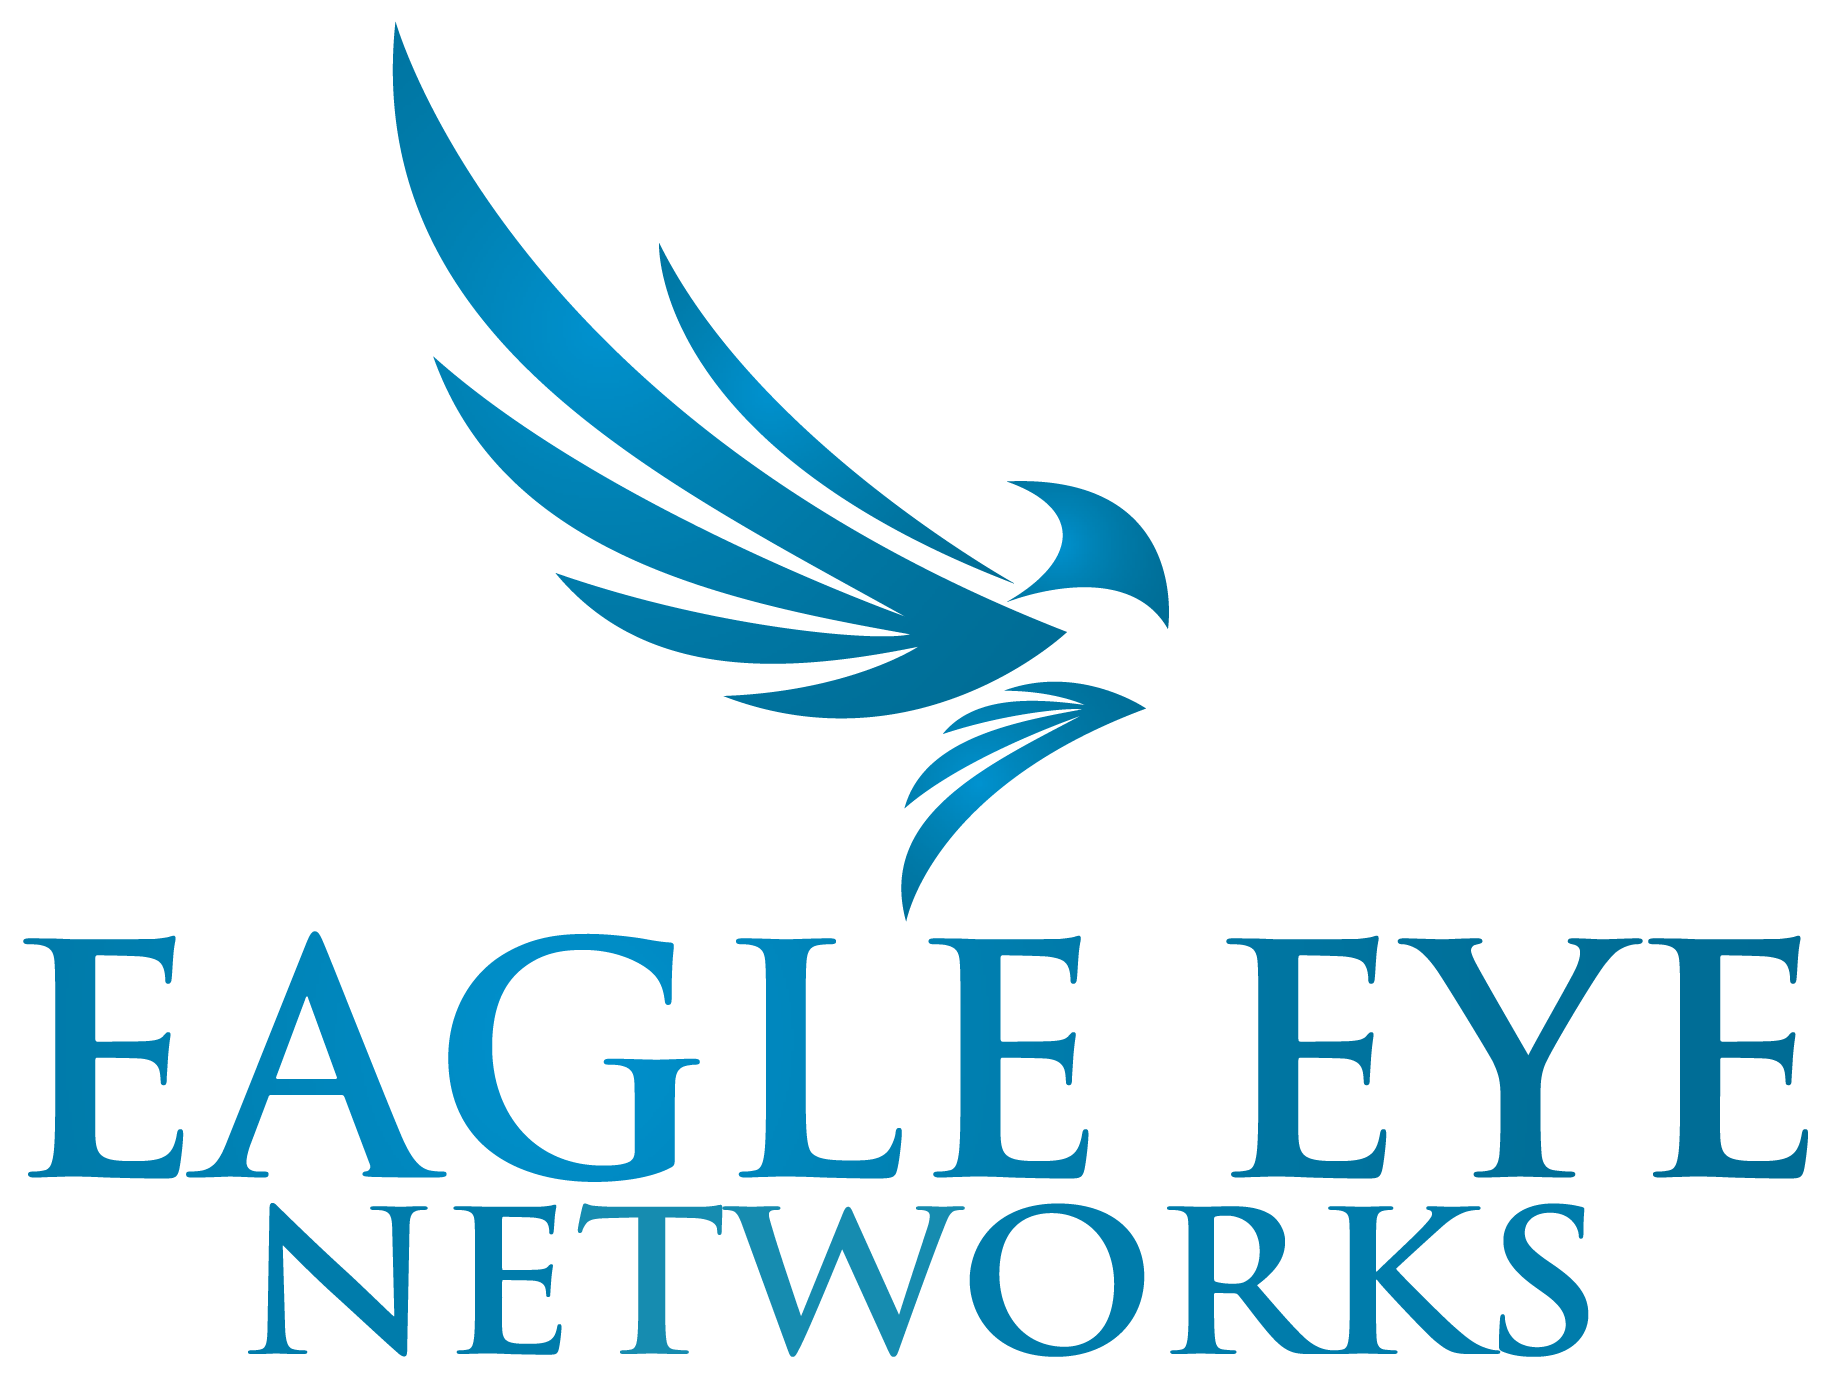 Eagle Eye NetworksCloud Video Surveillance Authorized Partner Logo